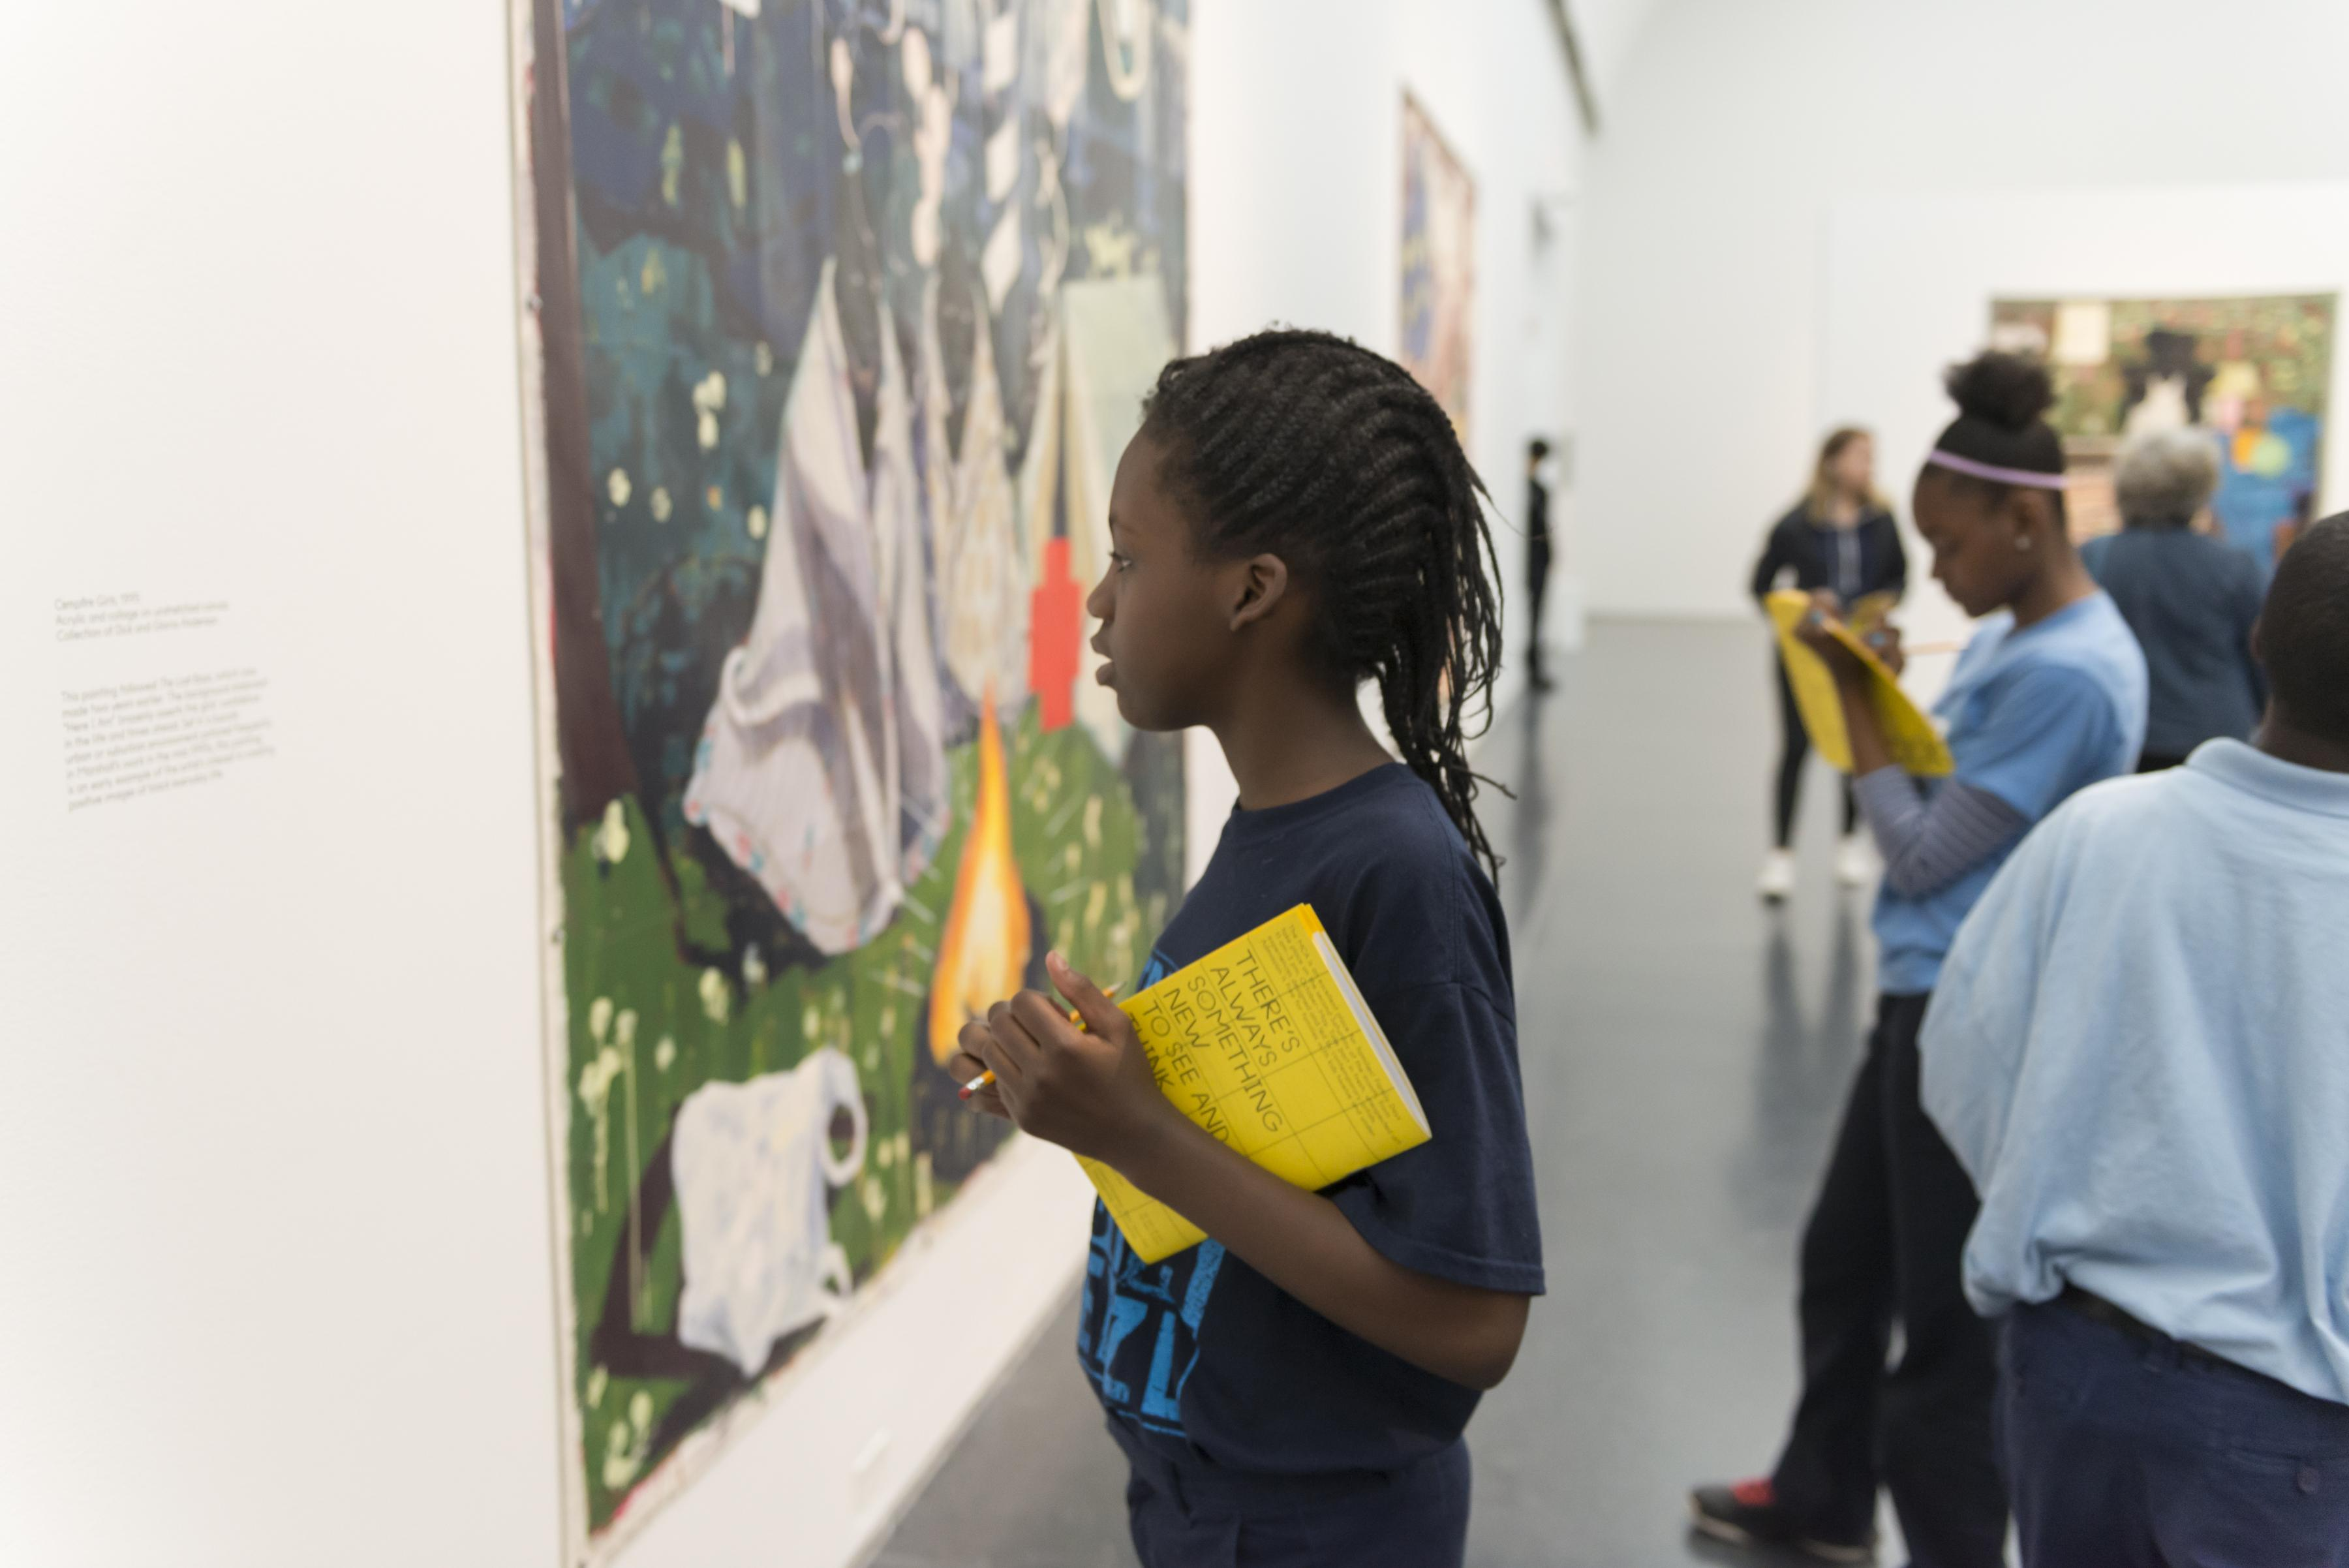 A young black girl holds a pencil and activity book in her hands while looking closely into the detail of a painting in a gallery.